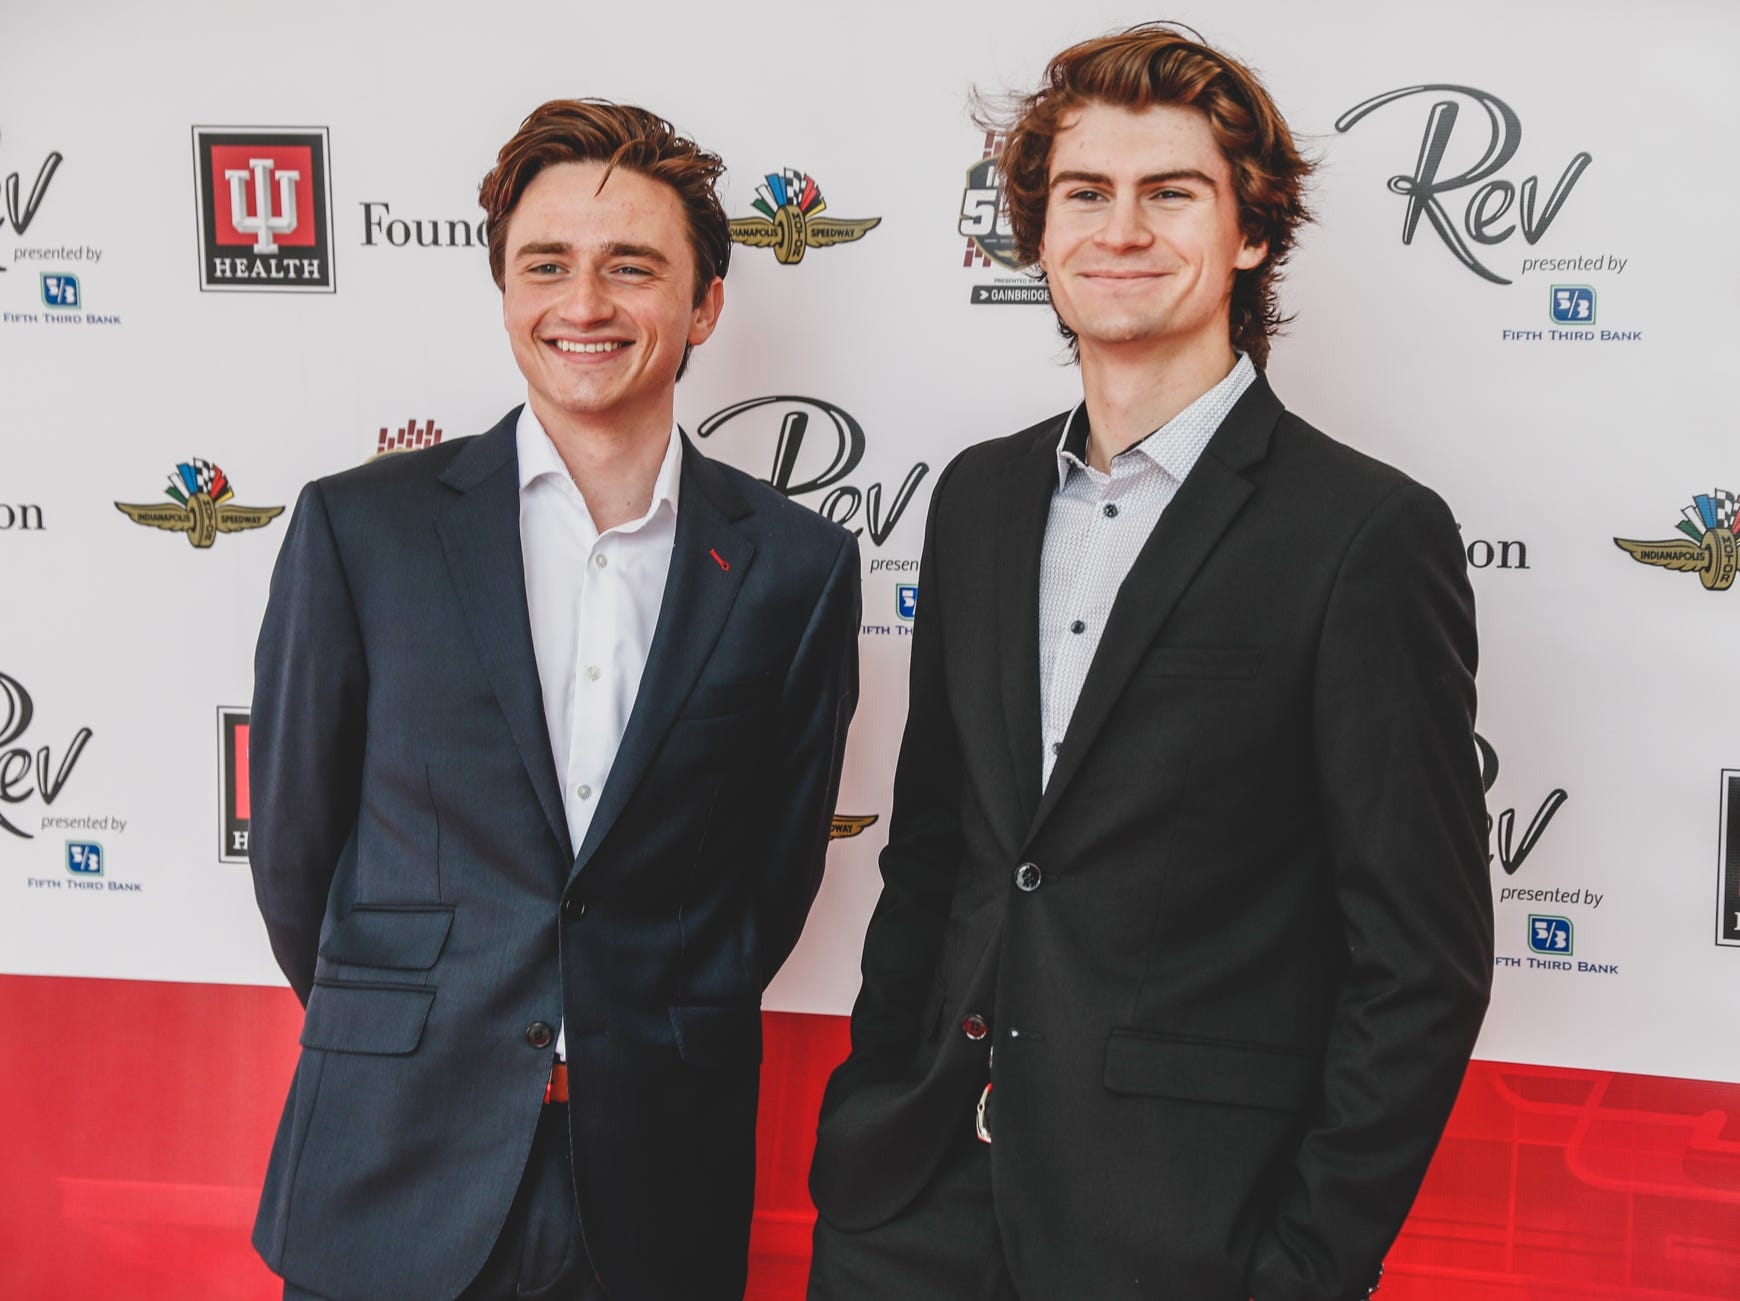 IndyCar team owner, George Steinbrenner IV, left, and IndyCar driver, Colton Hereta, walk the red carpet at the Rev Indy fundraiser, held at the Indianapolis Motor Speedway on Saturday, May 4, 2019. Funds raised support the IU Health Foundation statewide and the IU Health Emergency Medical Center at IMS.